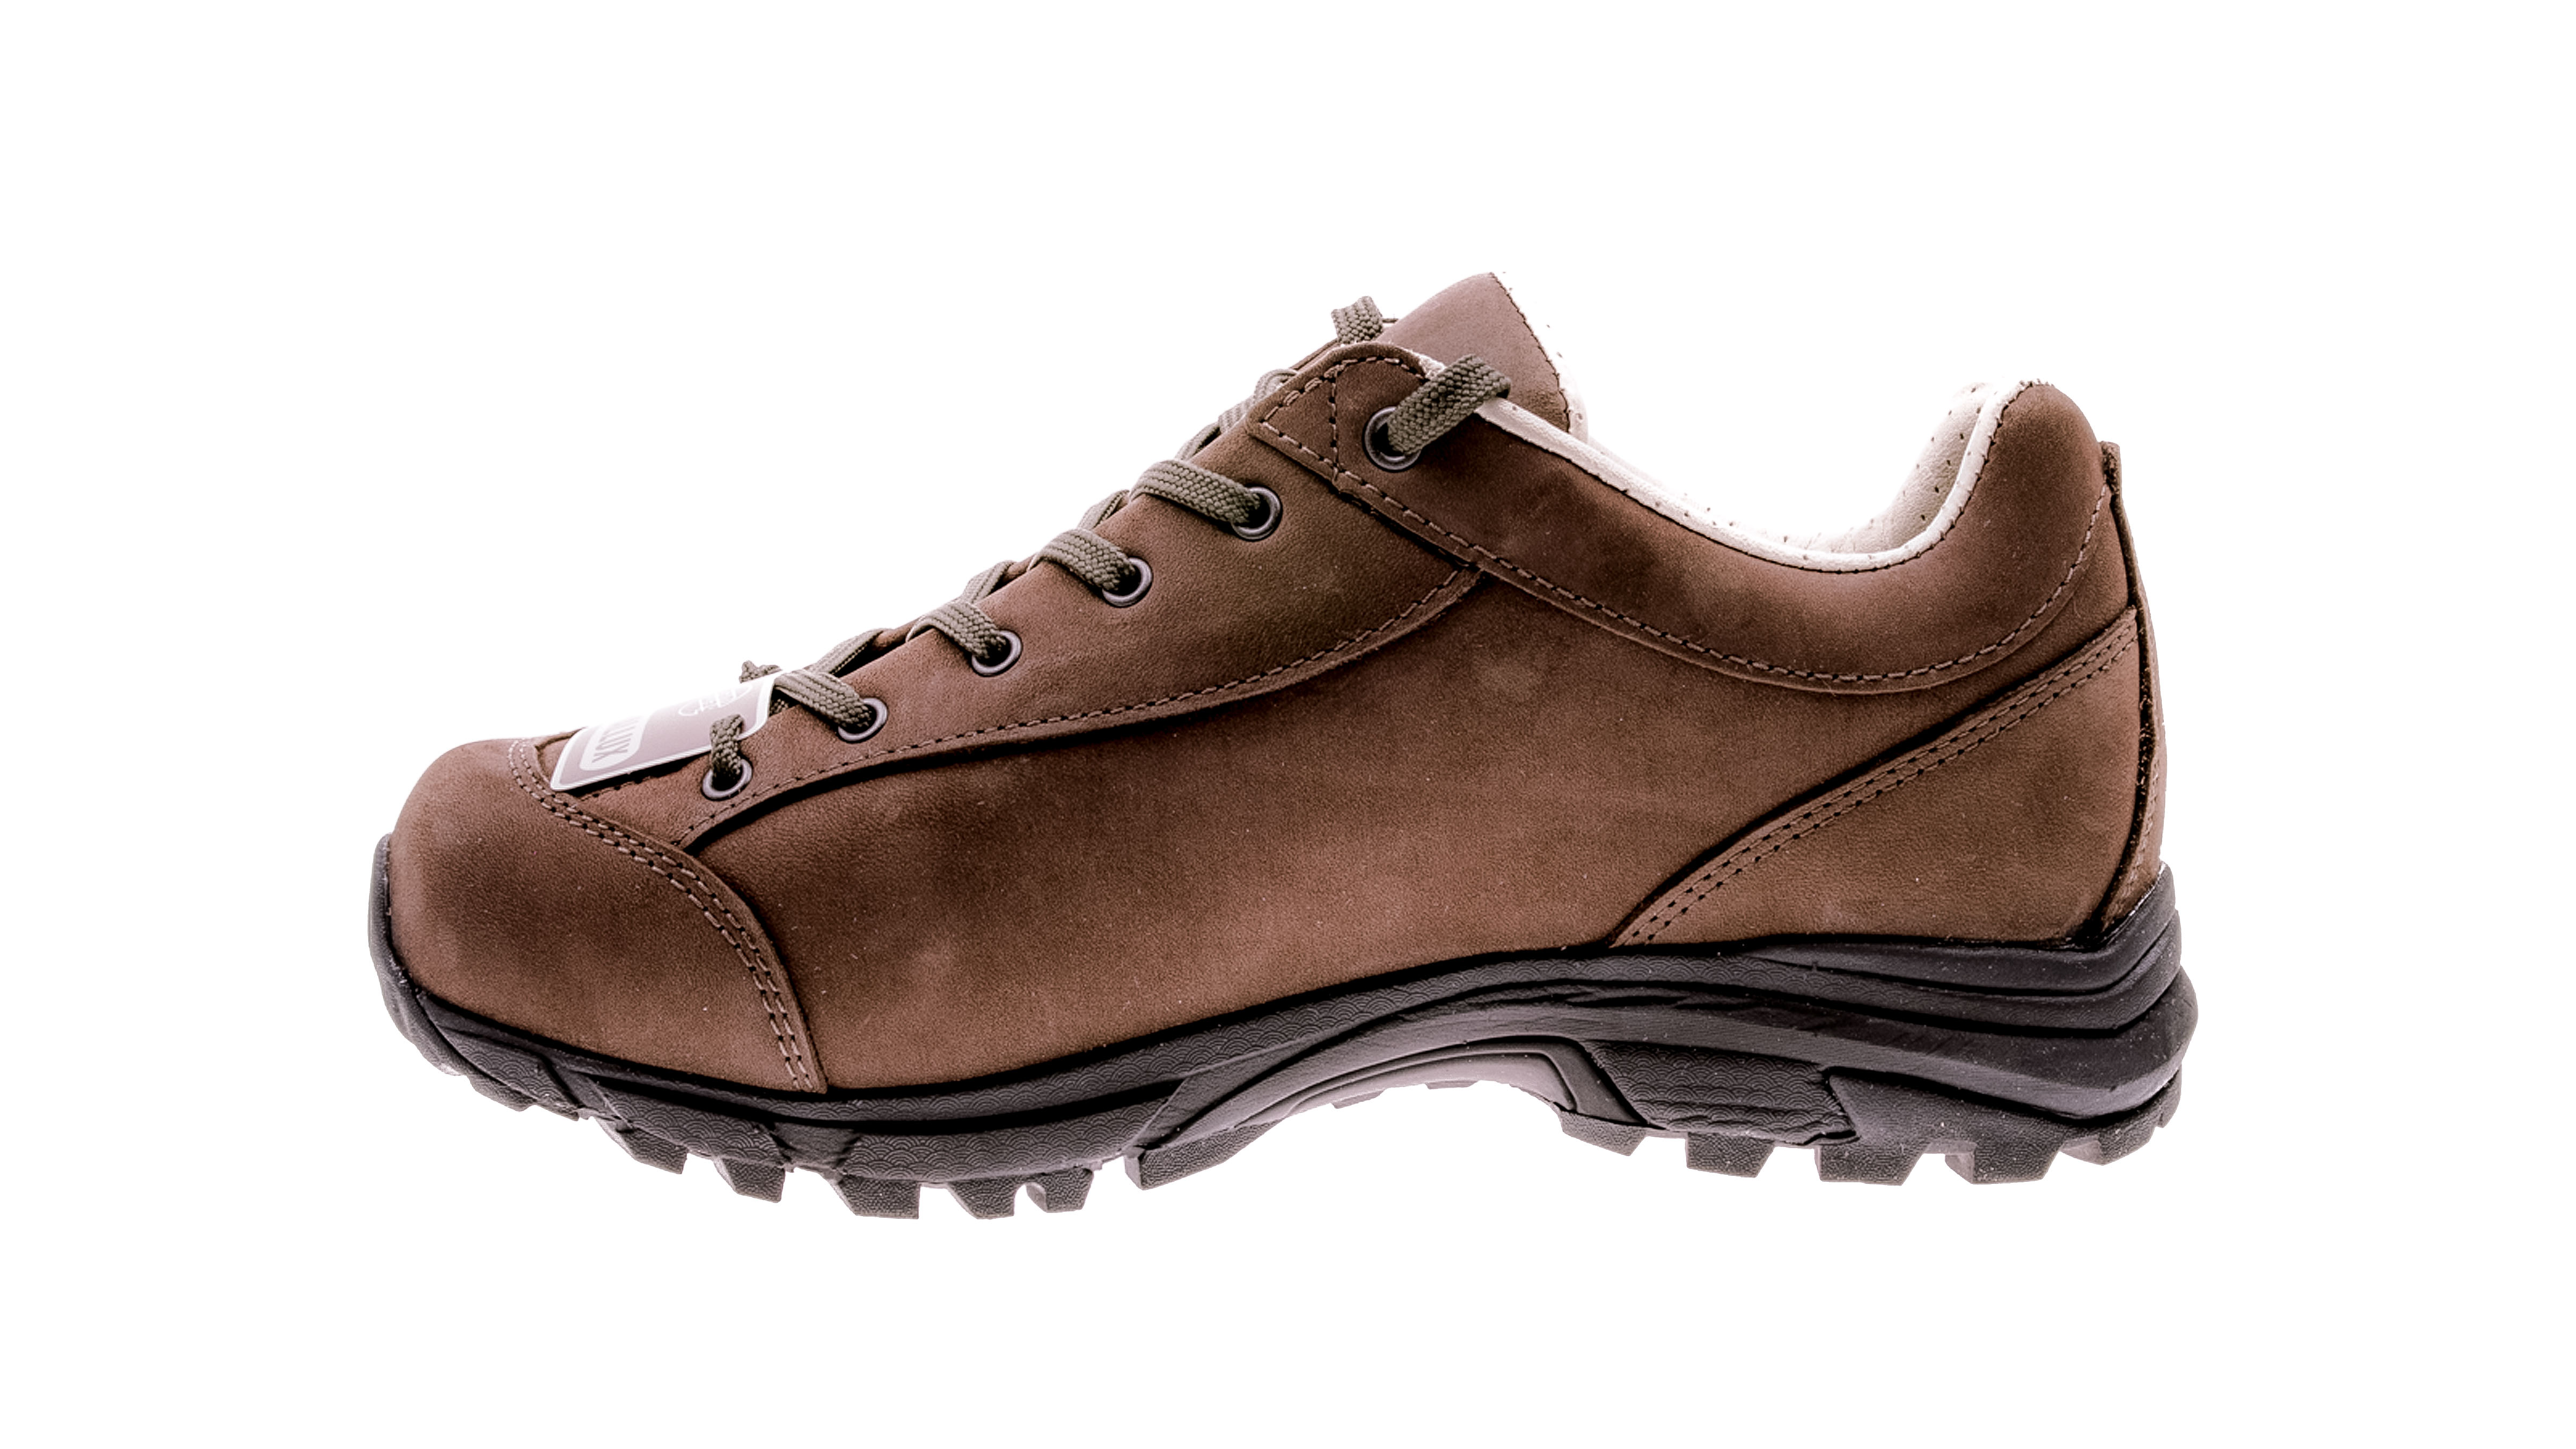 Hanwag Valungo Bunion Lady GTX brown bFnDS